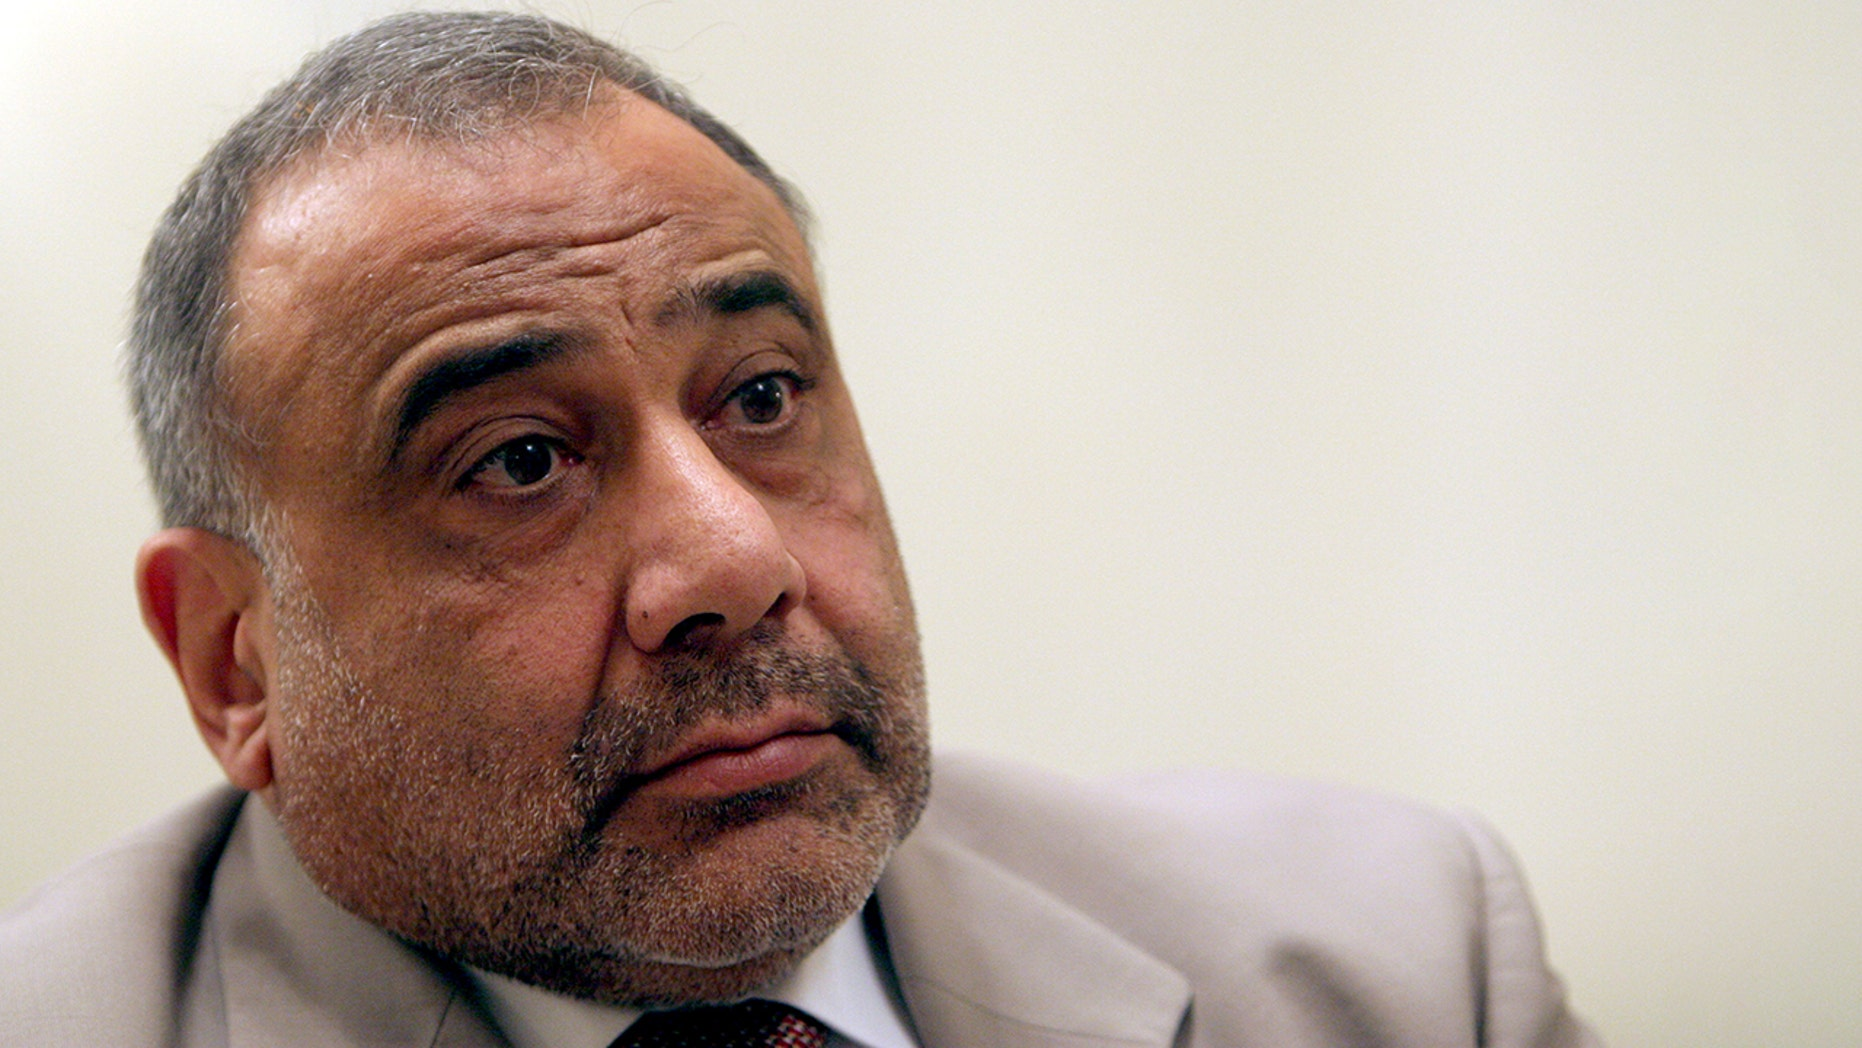 In this Jan. 3, 2006 file photo, Iraq's vice president Adel Abdul-Mahdi is seen during an interview with The Associated Press in Baghdad, Iraq. (AP Photo/Khalid Mohammed, File)